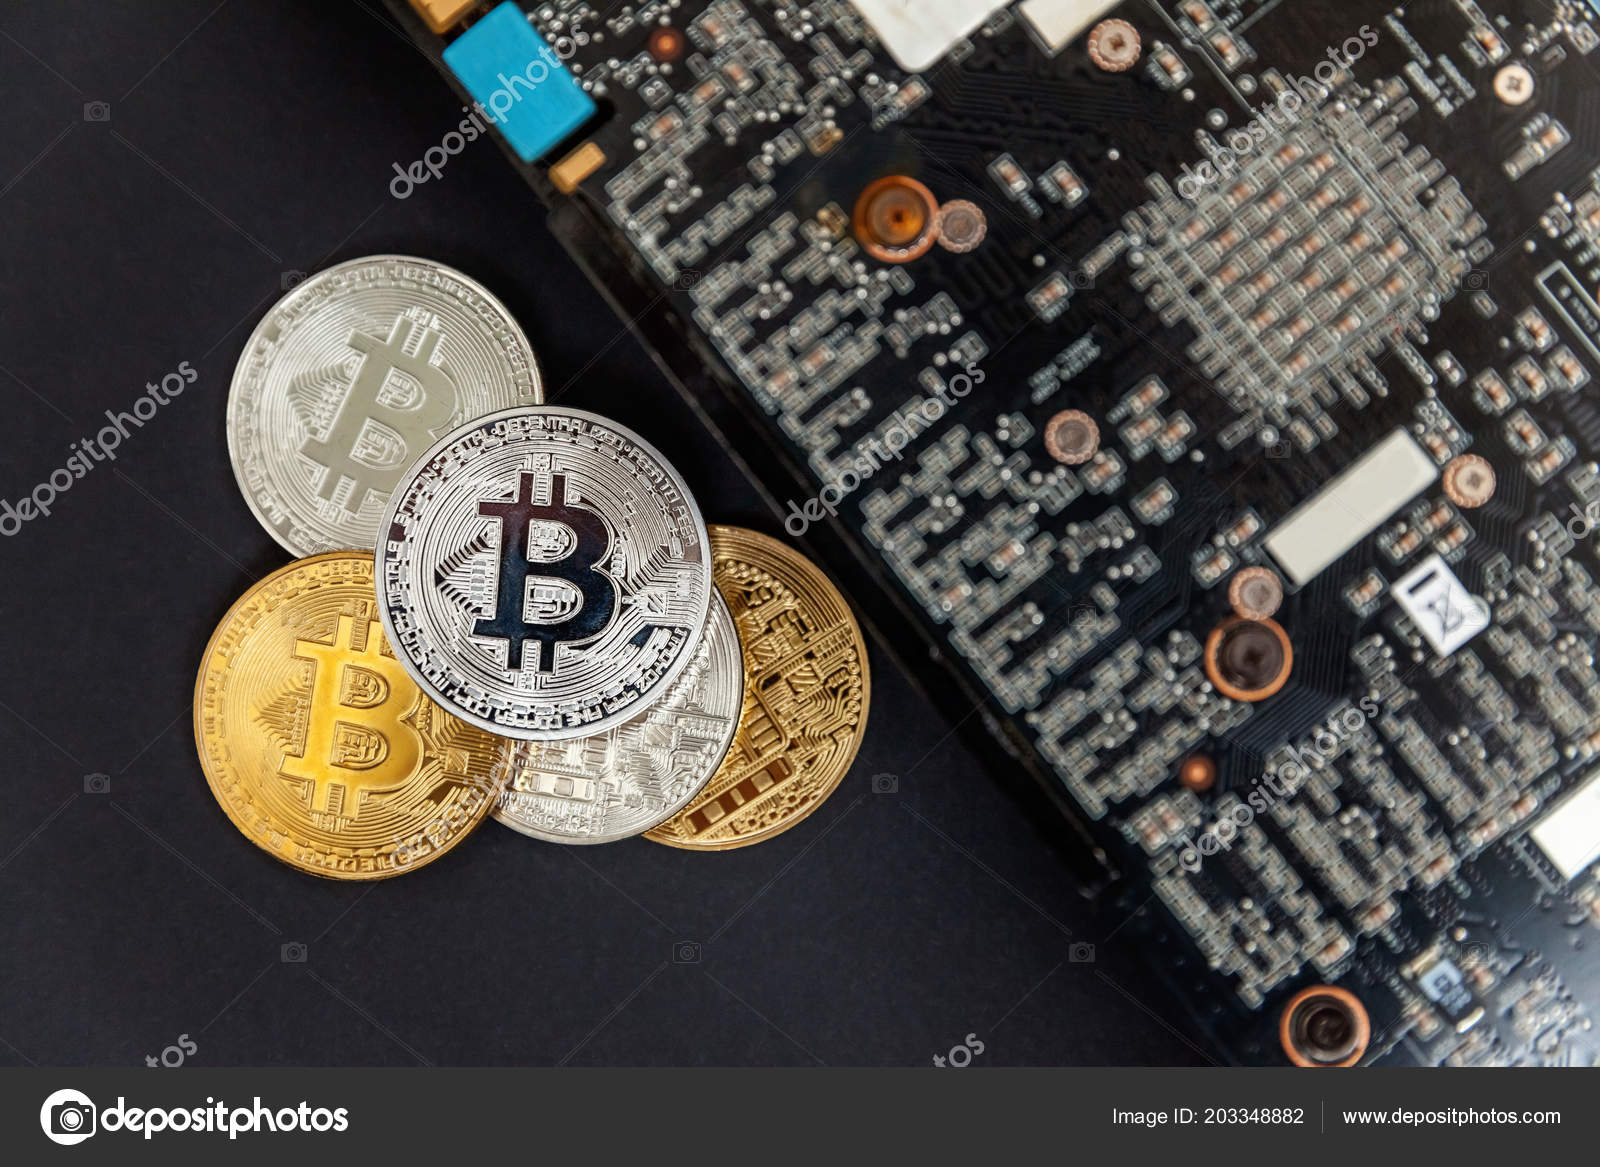 Bitcoins Lie Video Card Concept Mining Electronic Virtual Money Web Circuit Symbols Stock Photo For Banking And International Network Payment Symbol Of Crypto Currency By Luljo